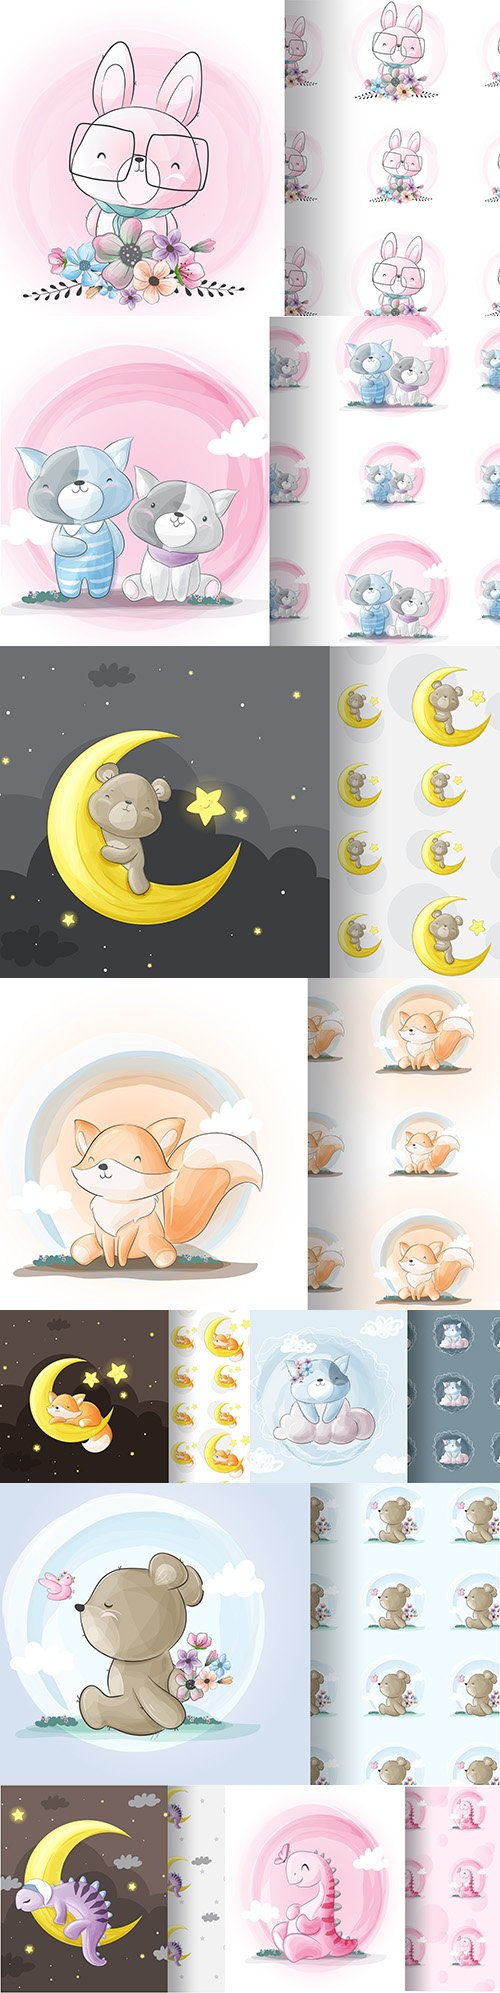 Cute cartoon animals and seamless background 4